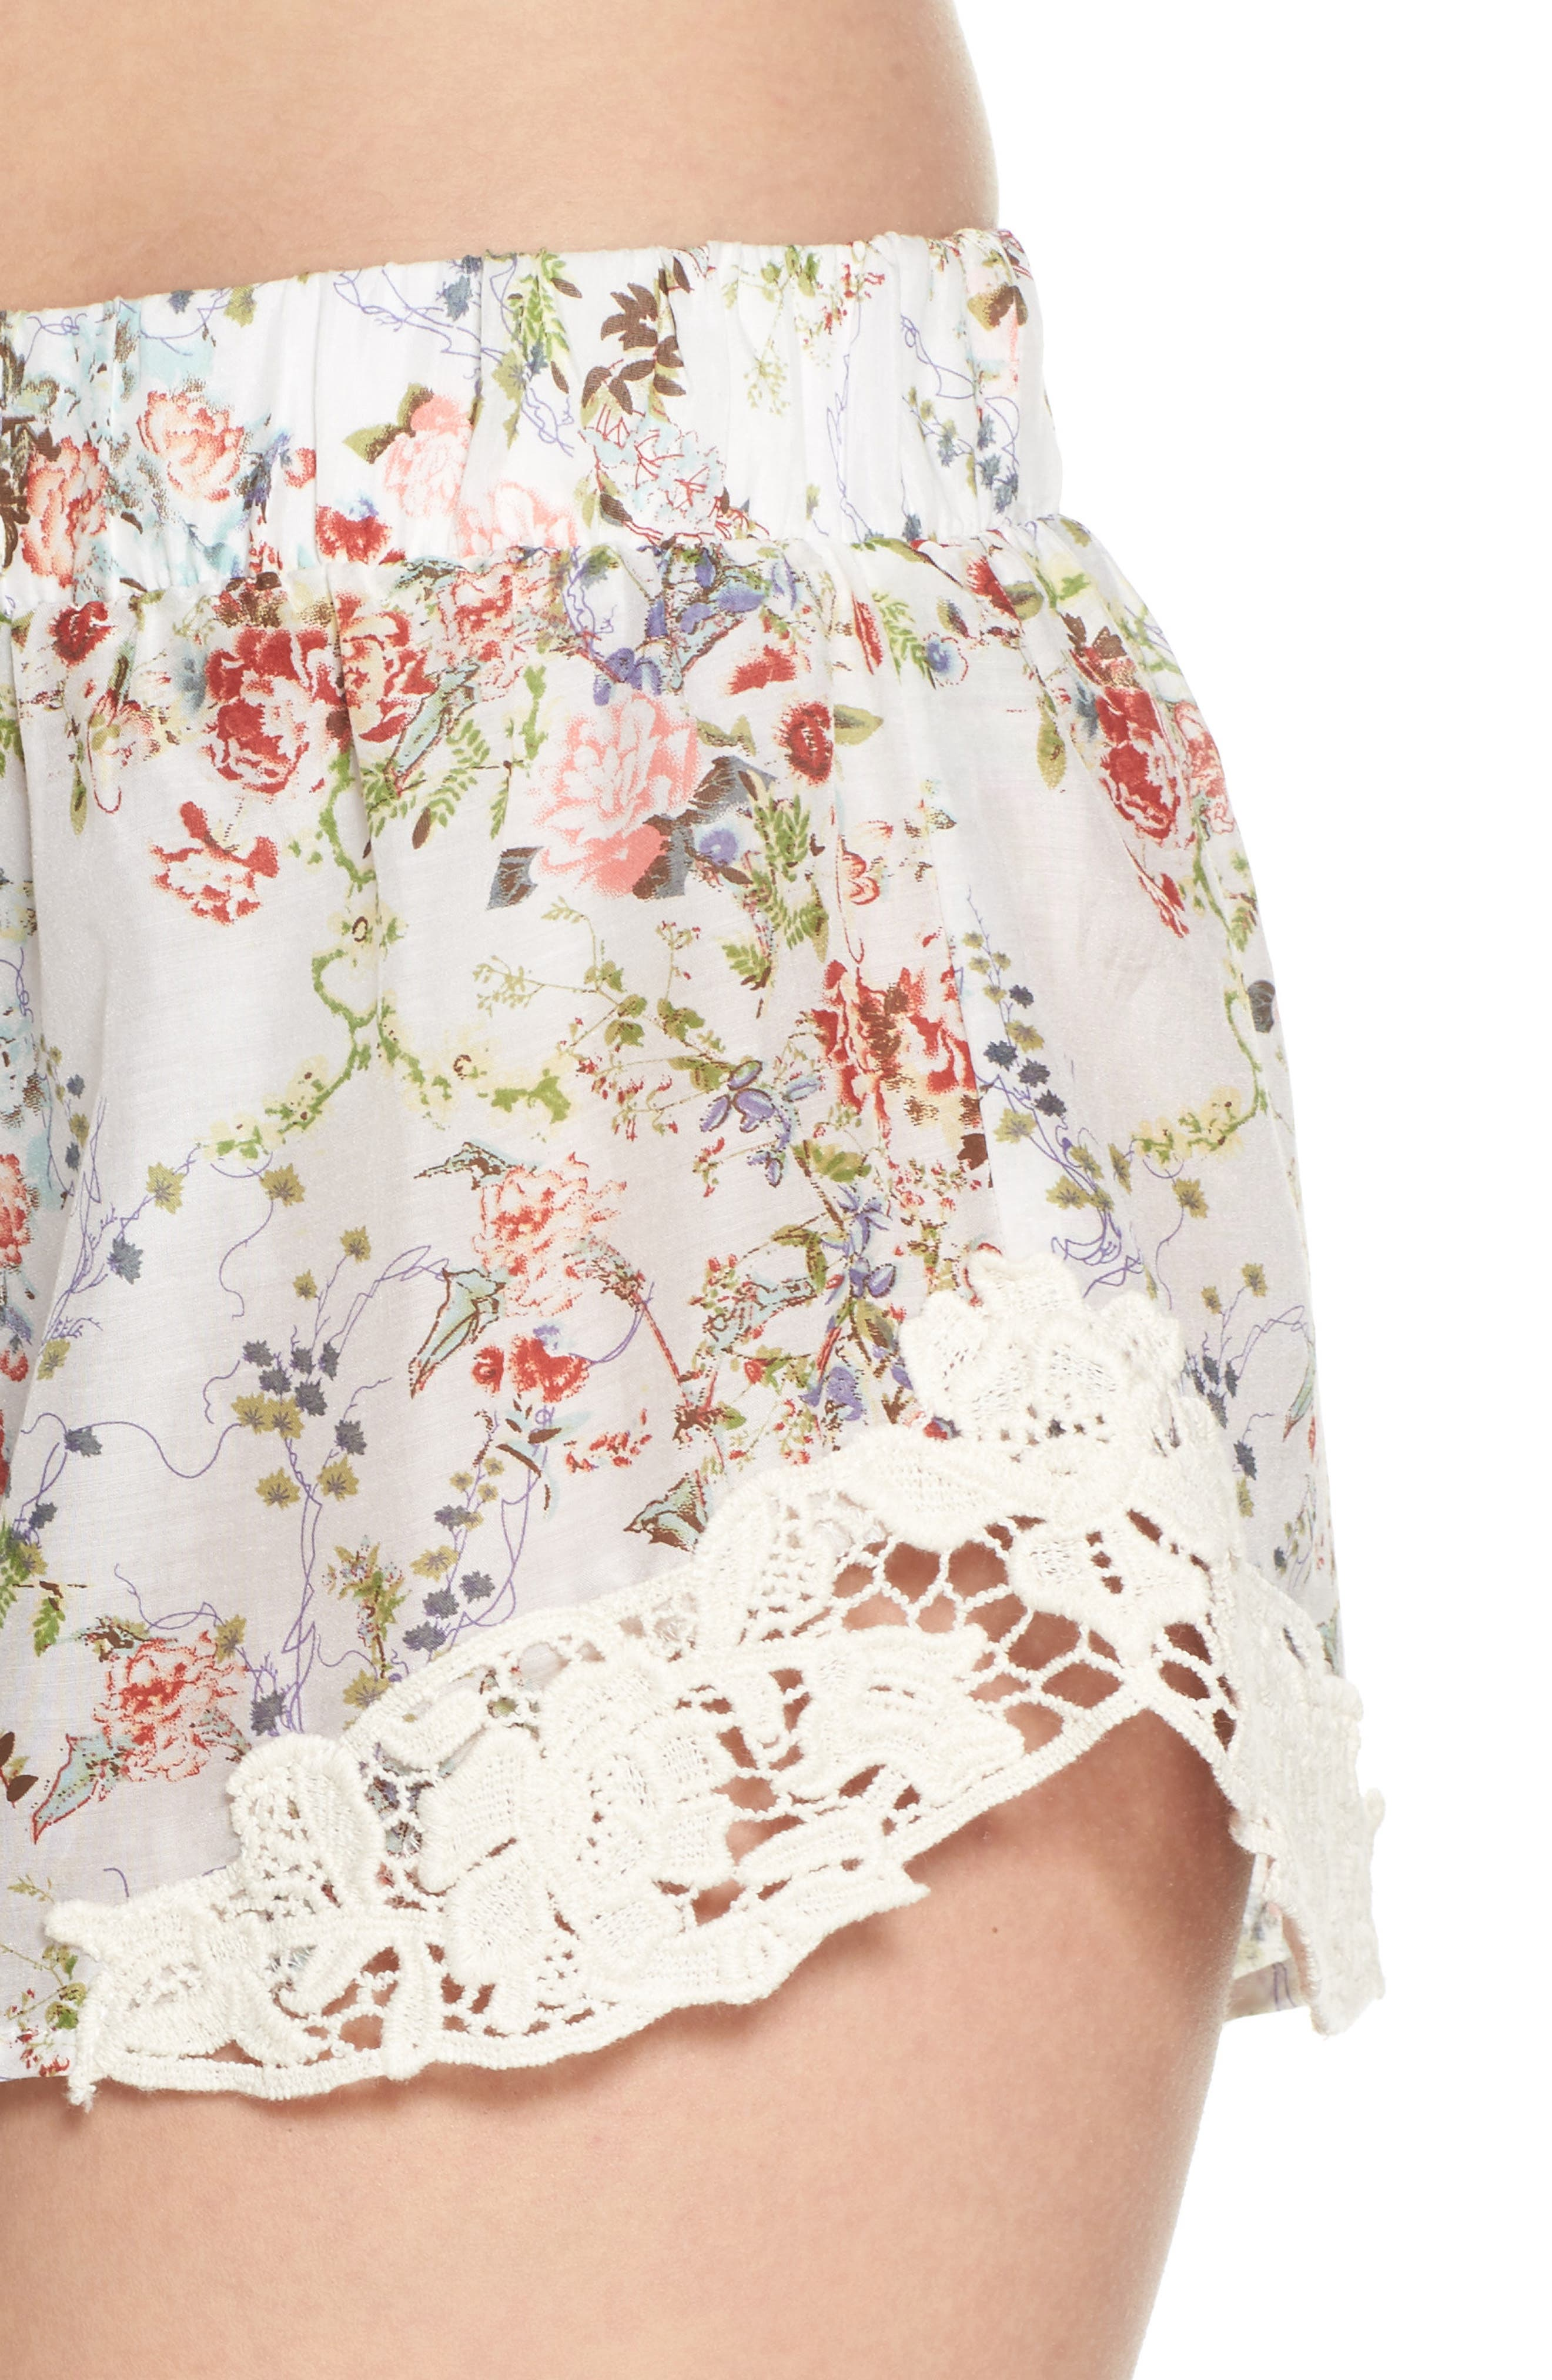 Yolly Floral Pajama Shorts,                             Alternate thumbnail 4, color,                             Ivory Floral